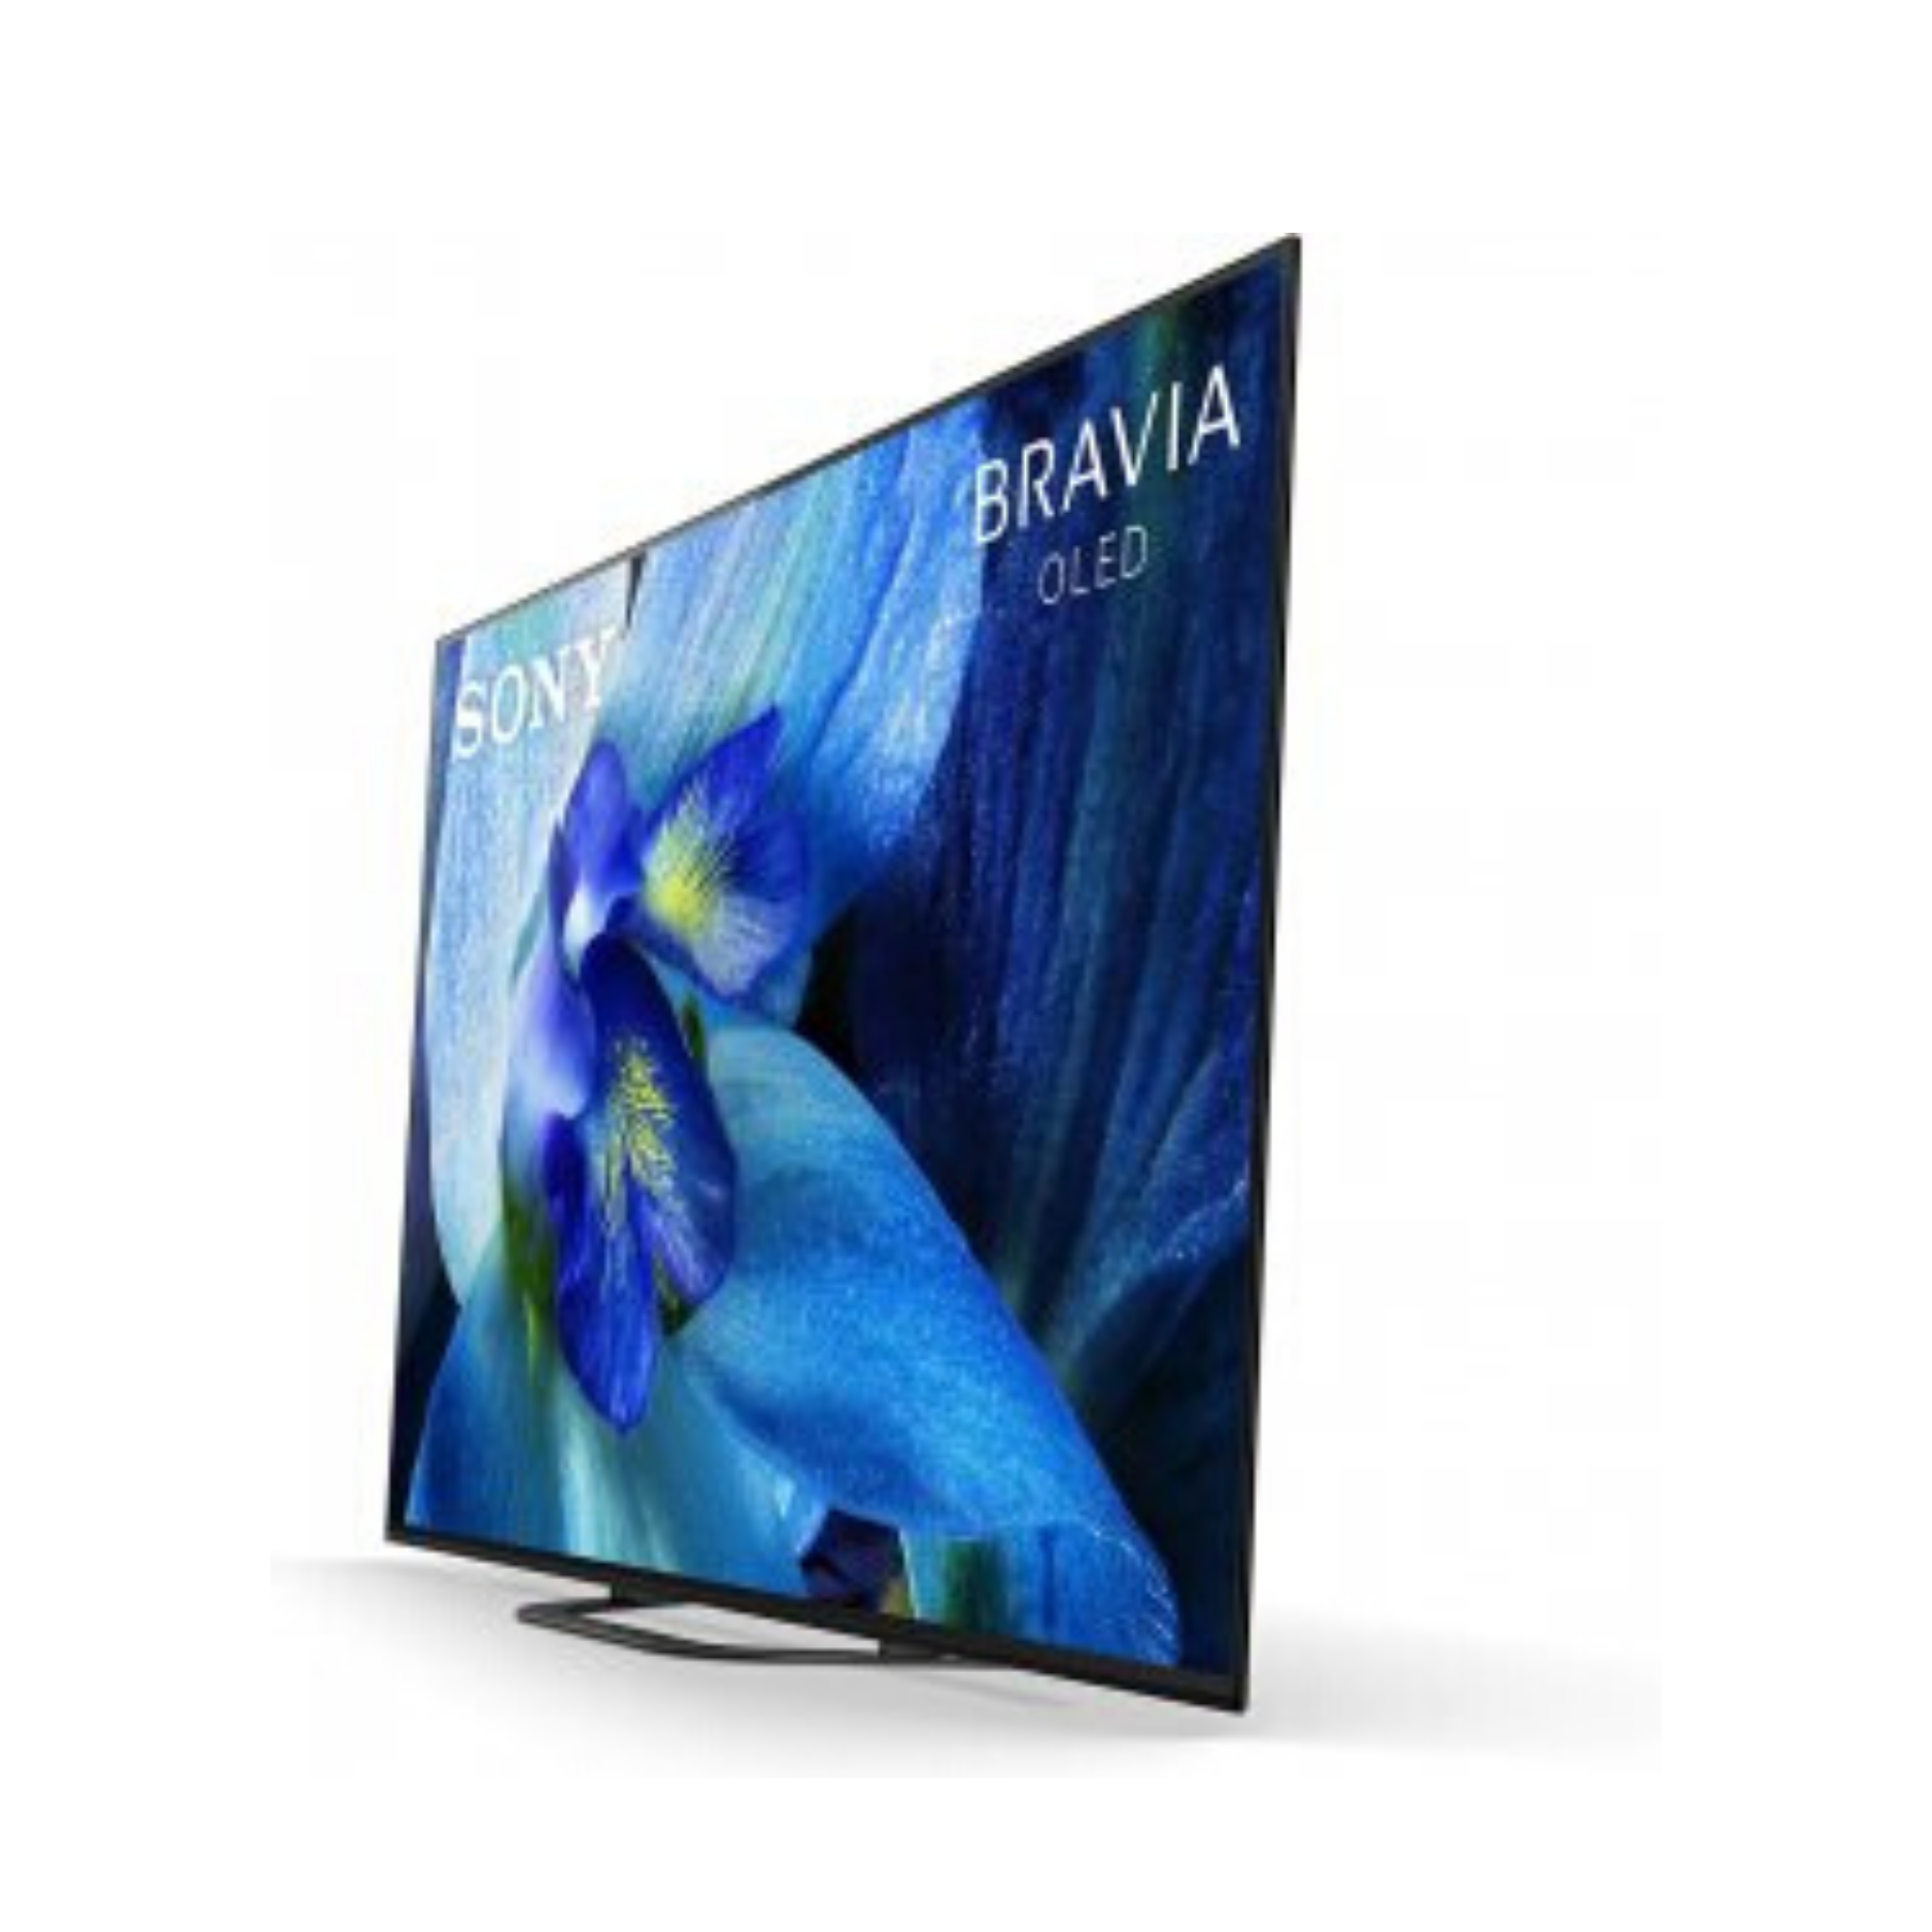 Sony XBR-65A8G 65 Inch TV: BRAVIA OLED 4K Ultra HD Smart TV with HDR and Alexa